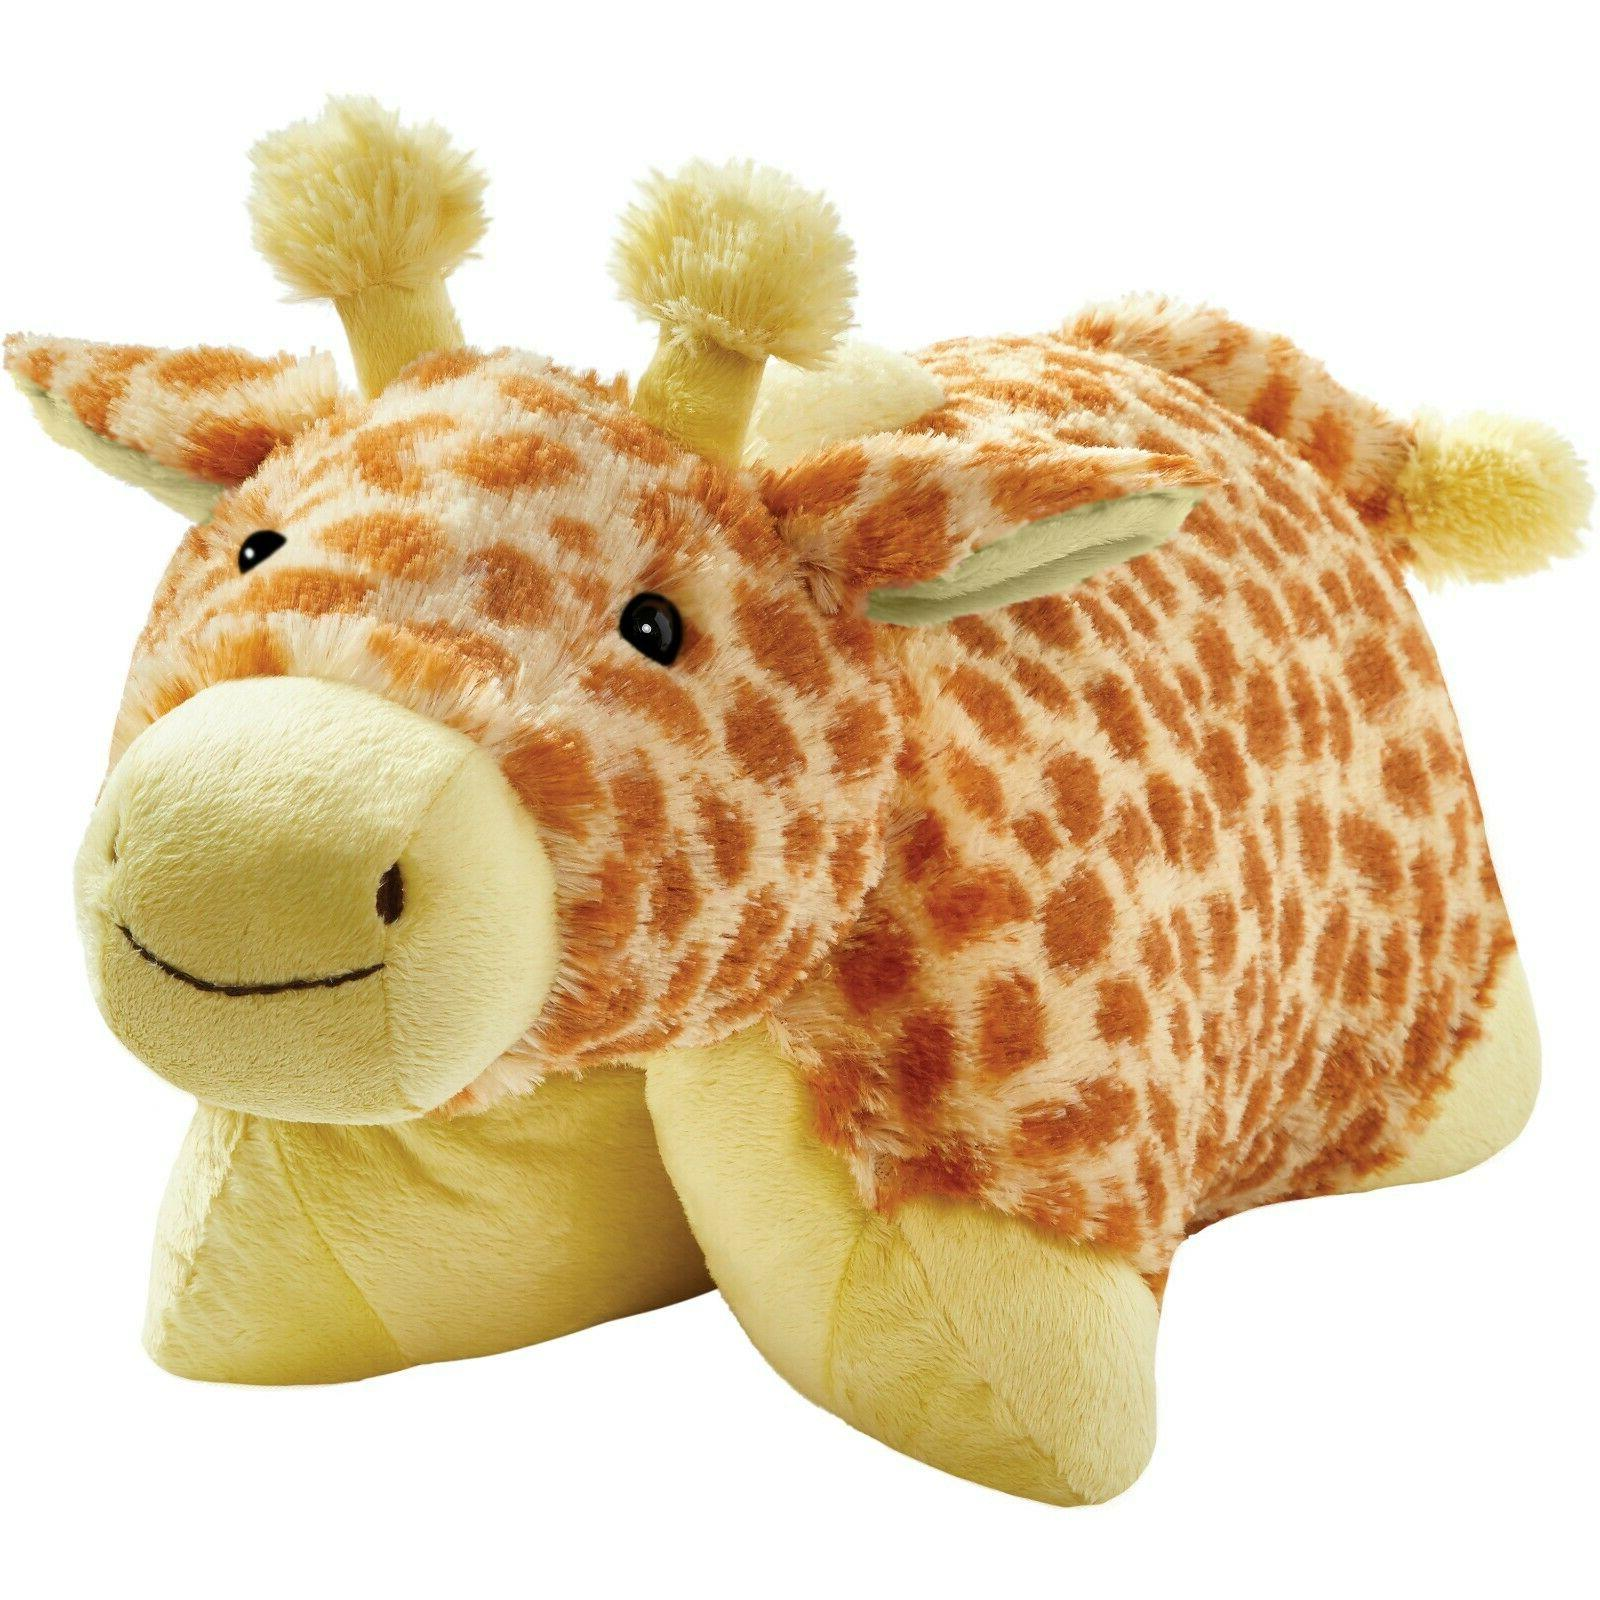 "Pillow Pets Signature, Jolly Giraffe, 18"" Stuffed Animal Plu"